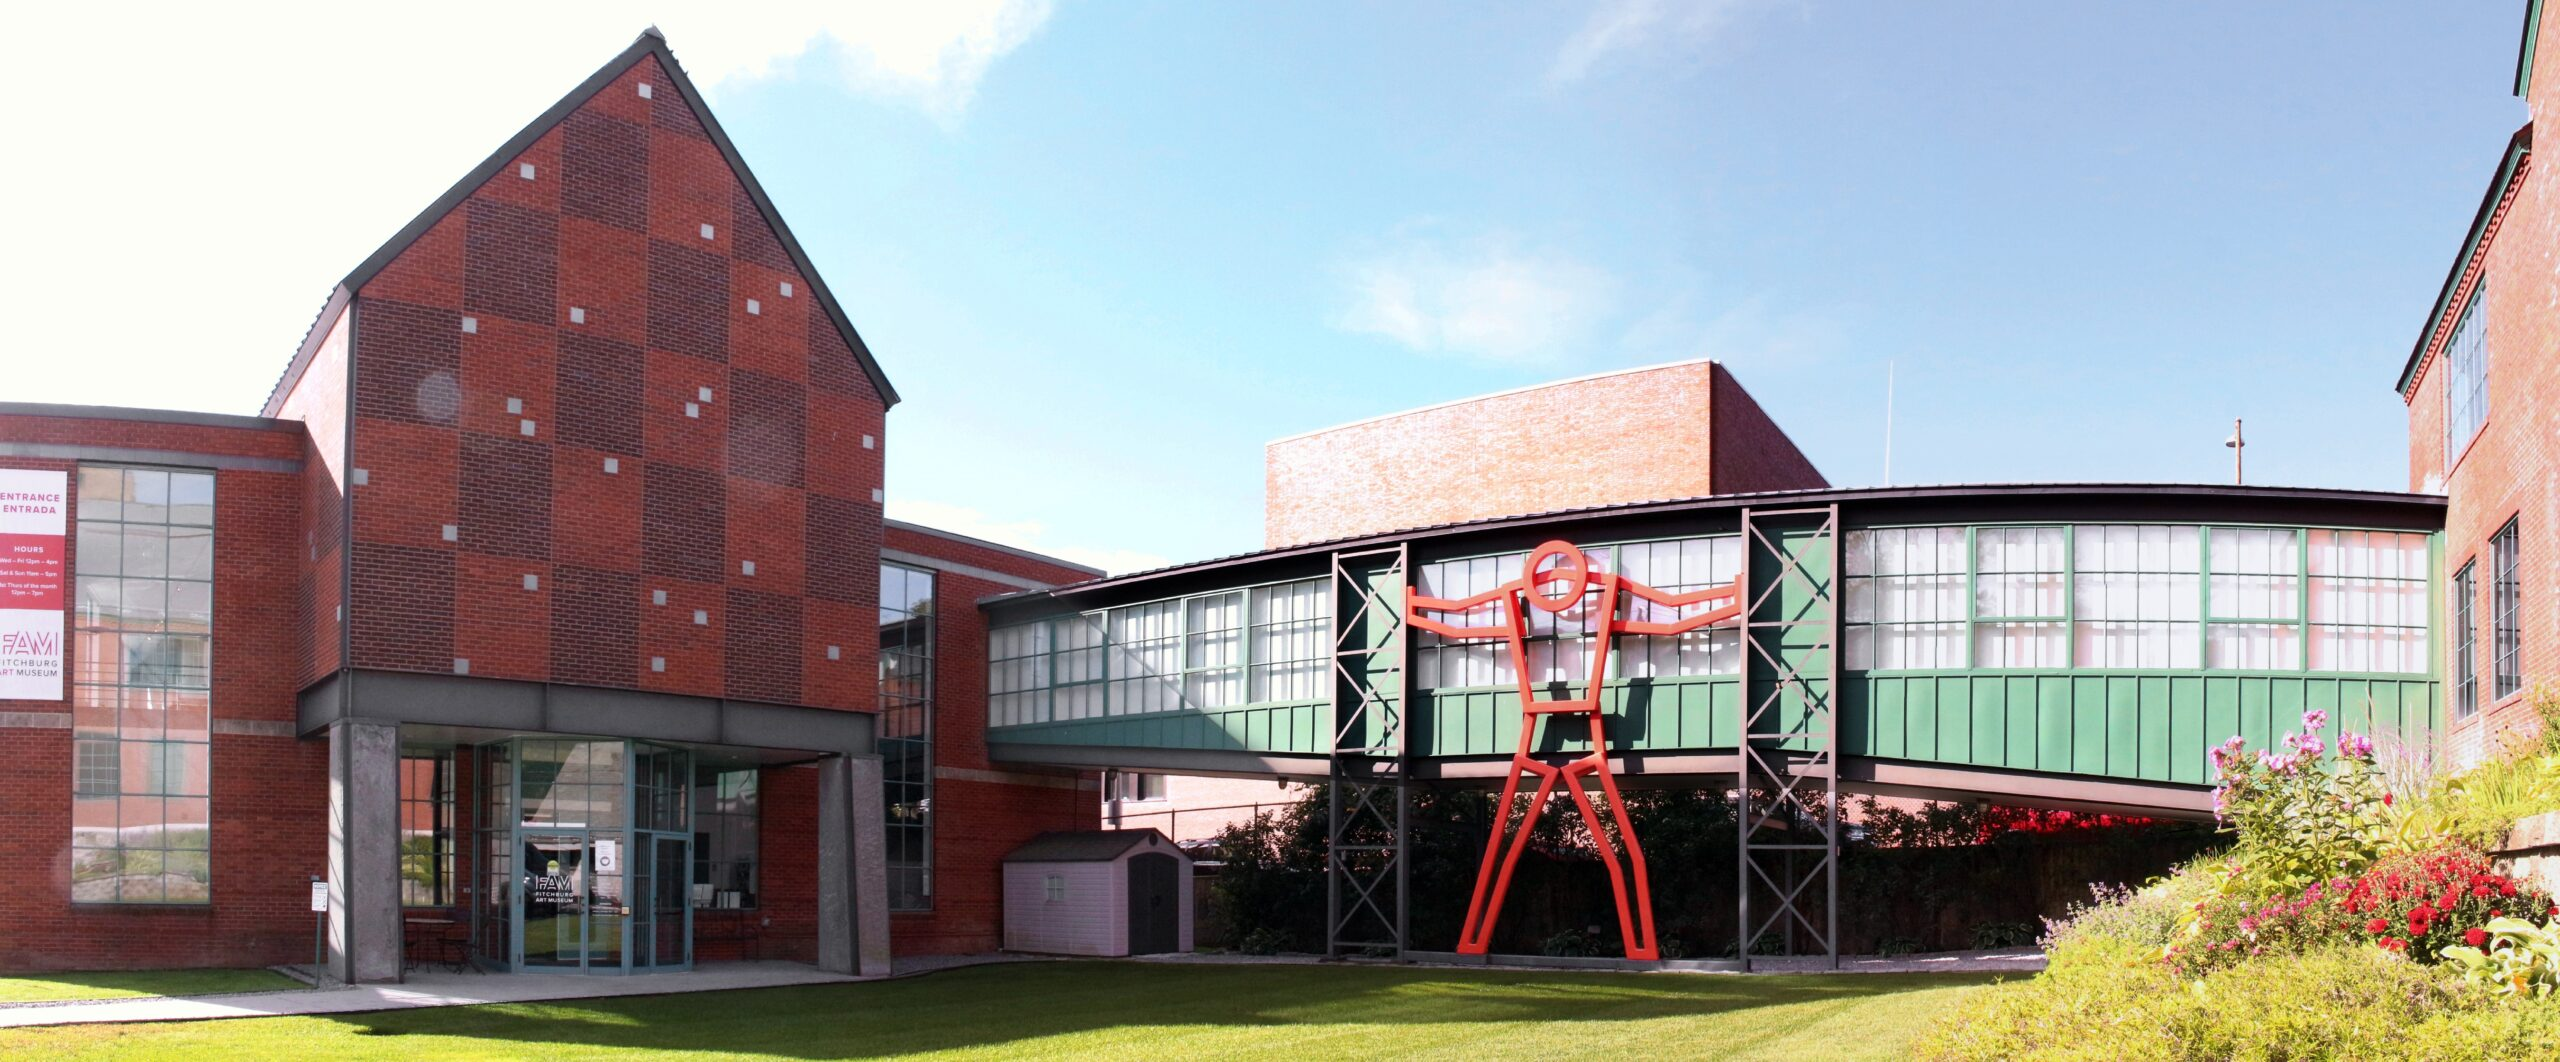 Front facade of the Fitchburg art museum - brick building with glass walkway and sculptural person supporting walls